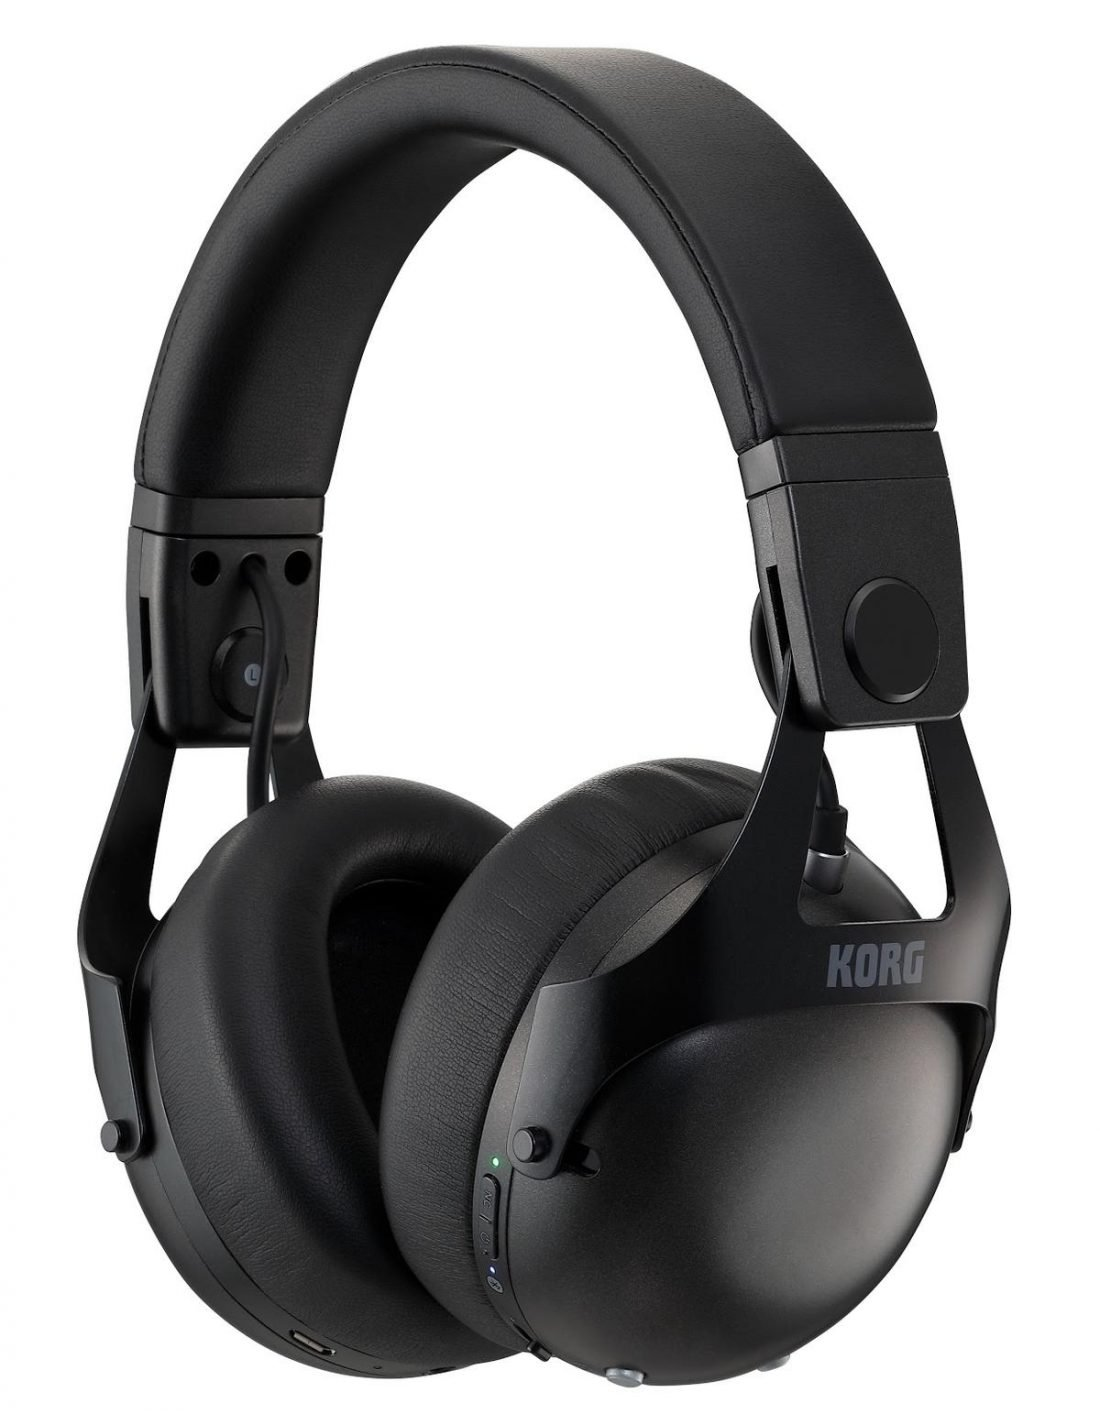 NC-Q1 Black Headphones (from korg.com)